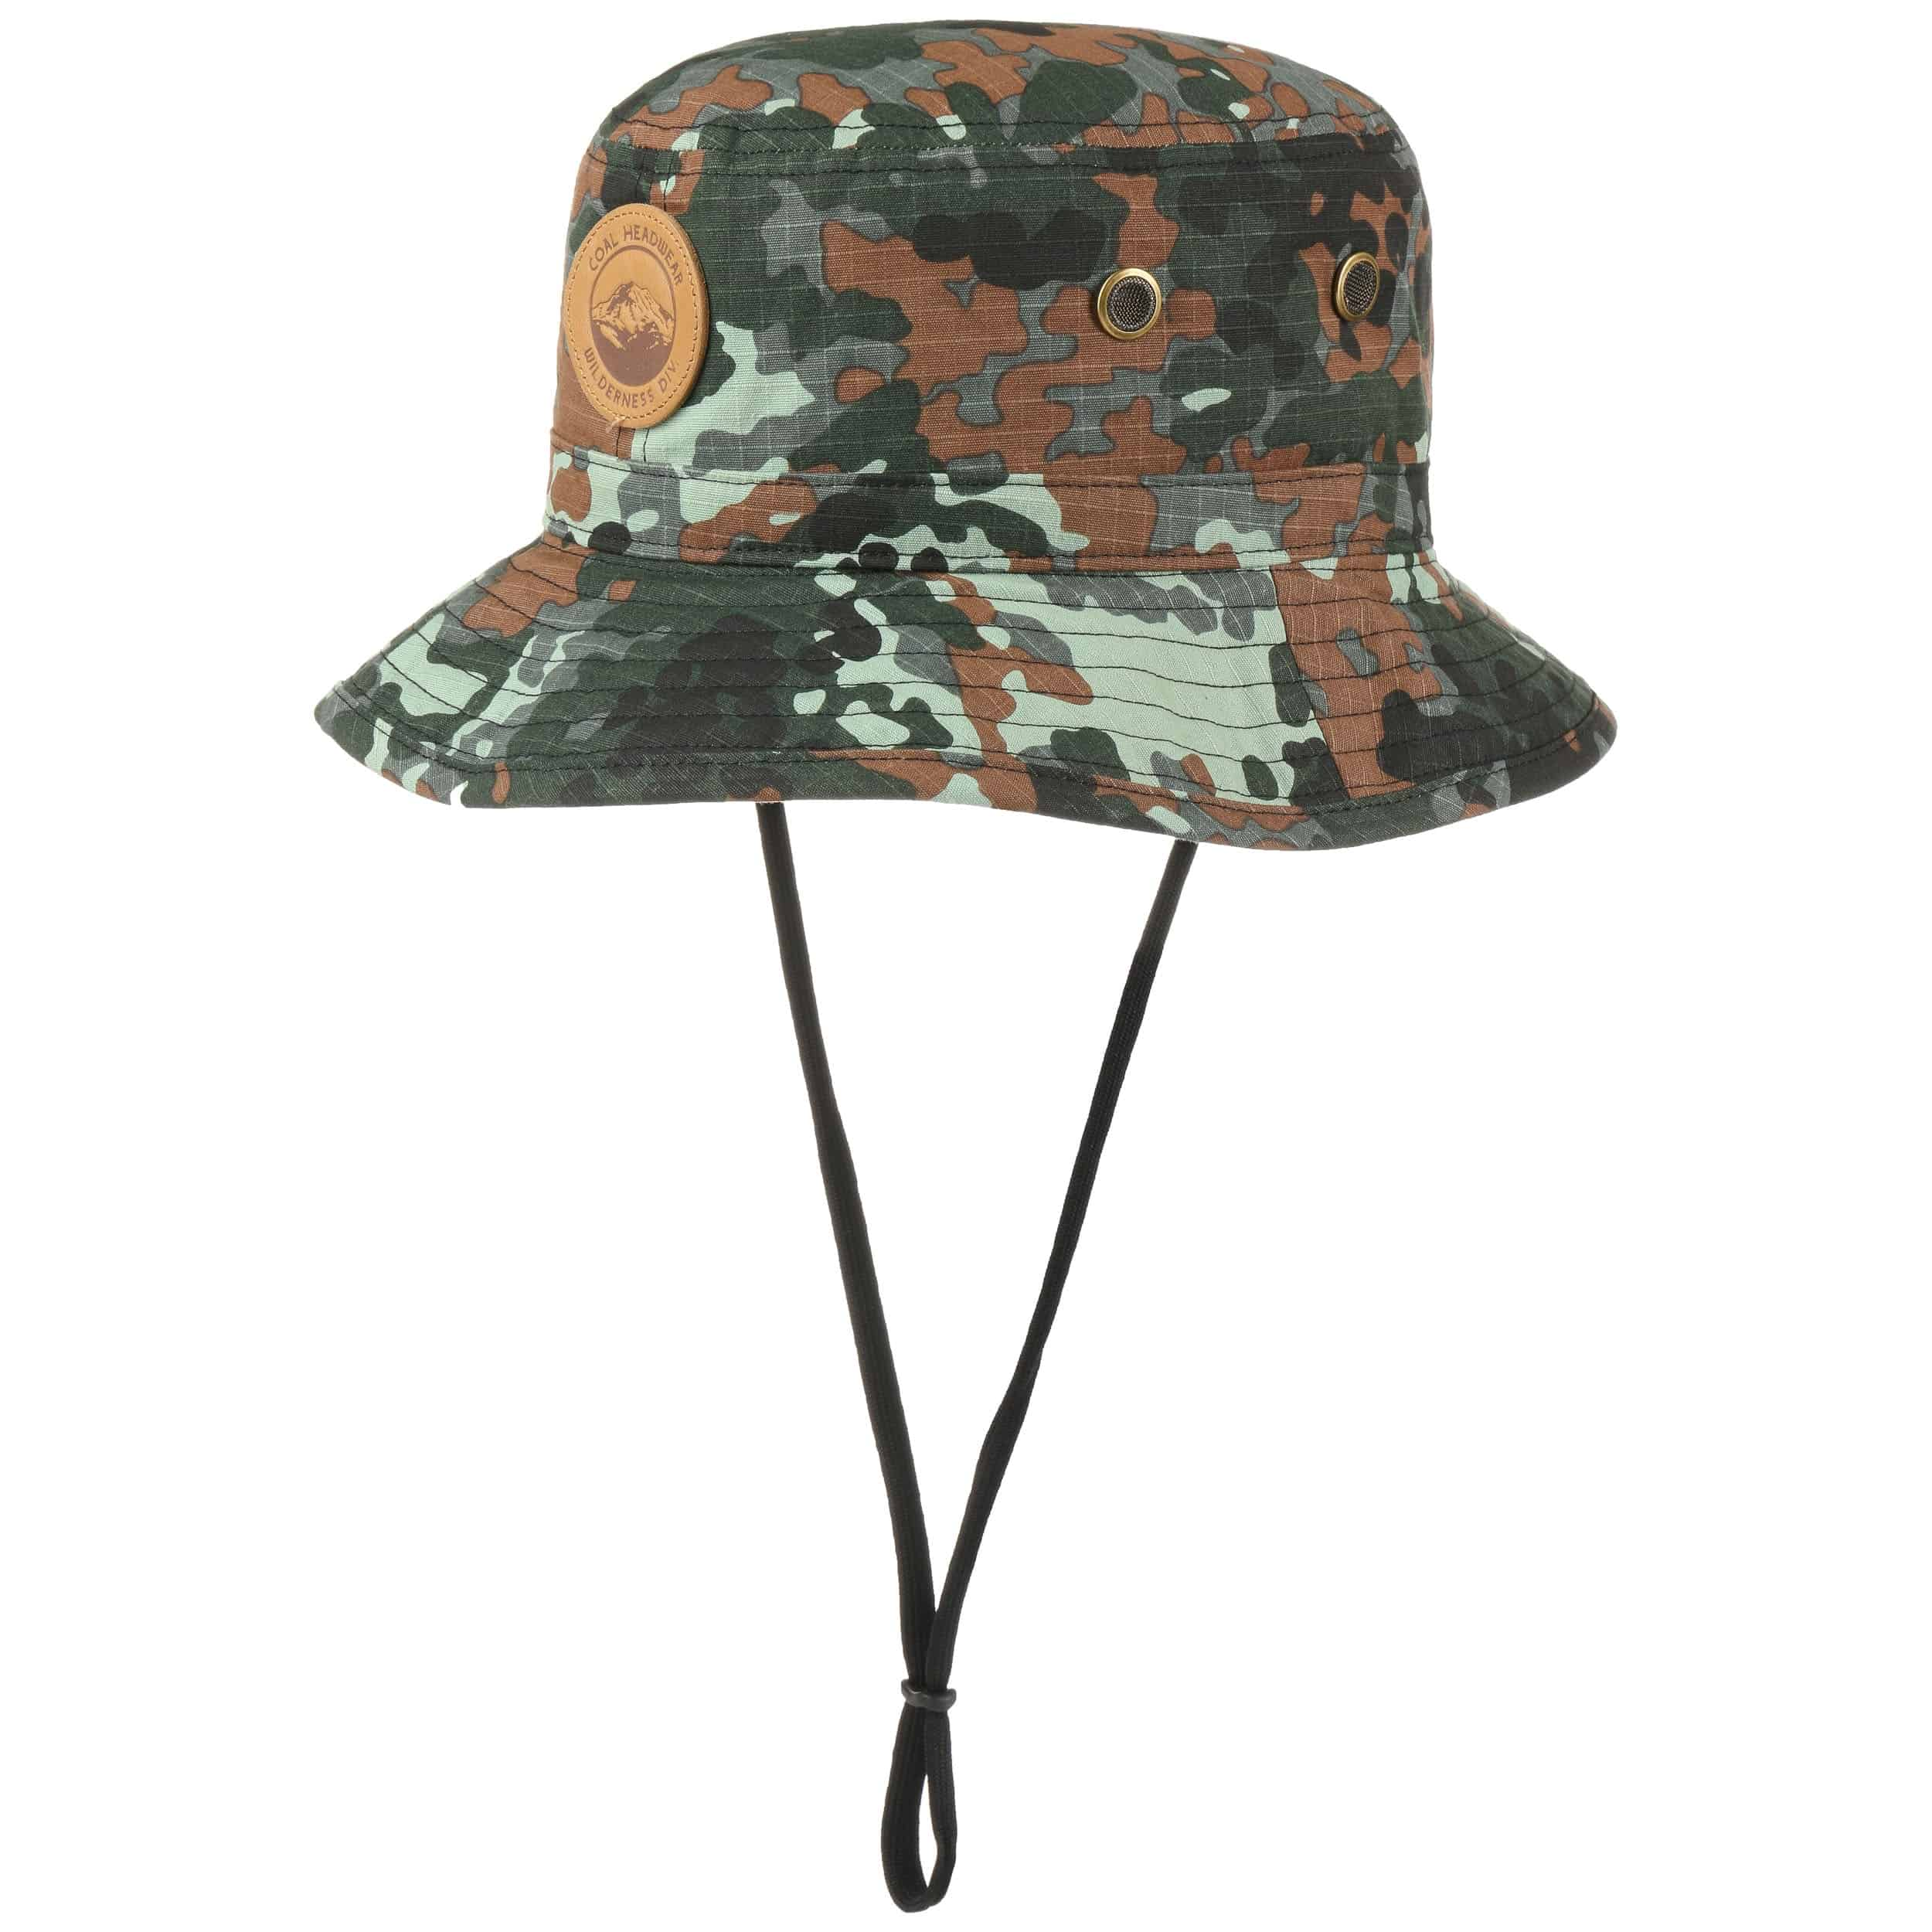 ... Speckler Camo Bucket Hat by Coal - camouflage 5 71599c3f8b5f